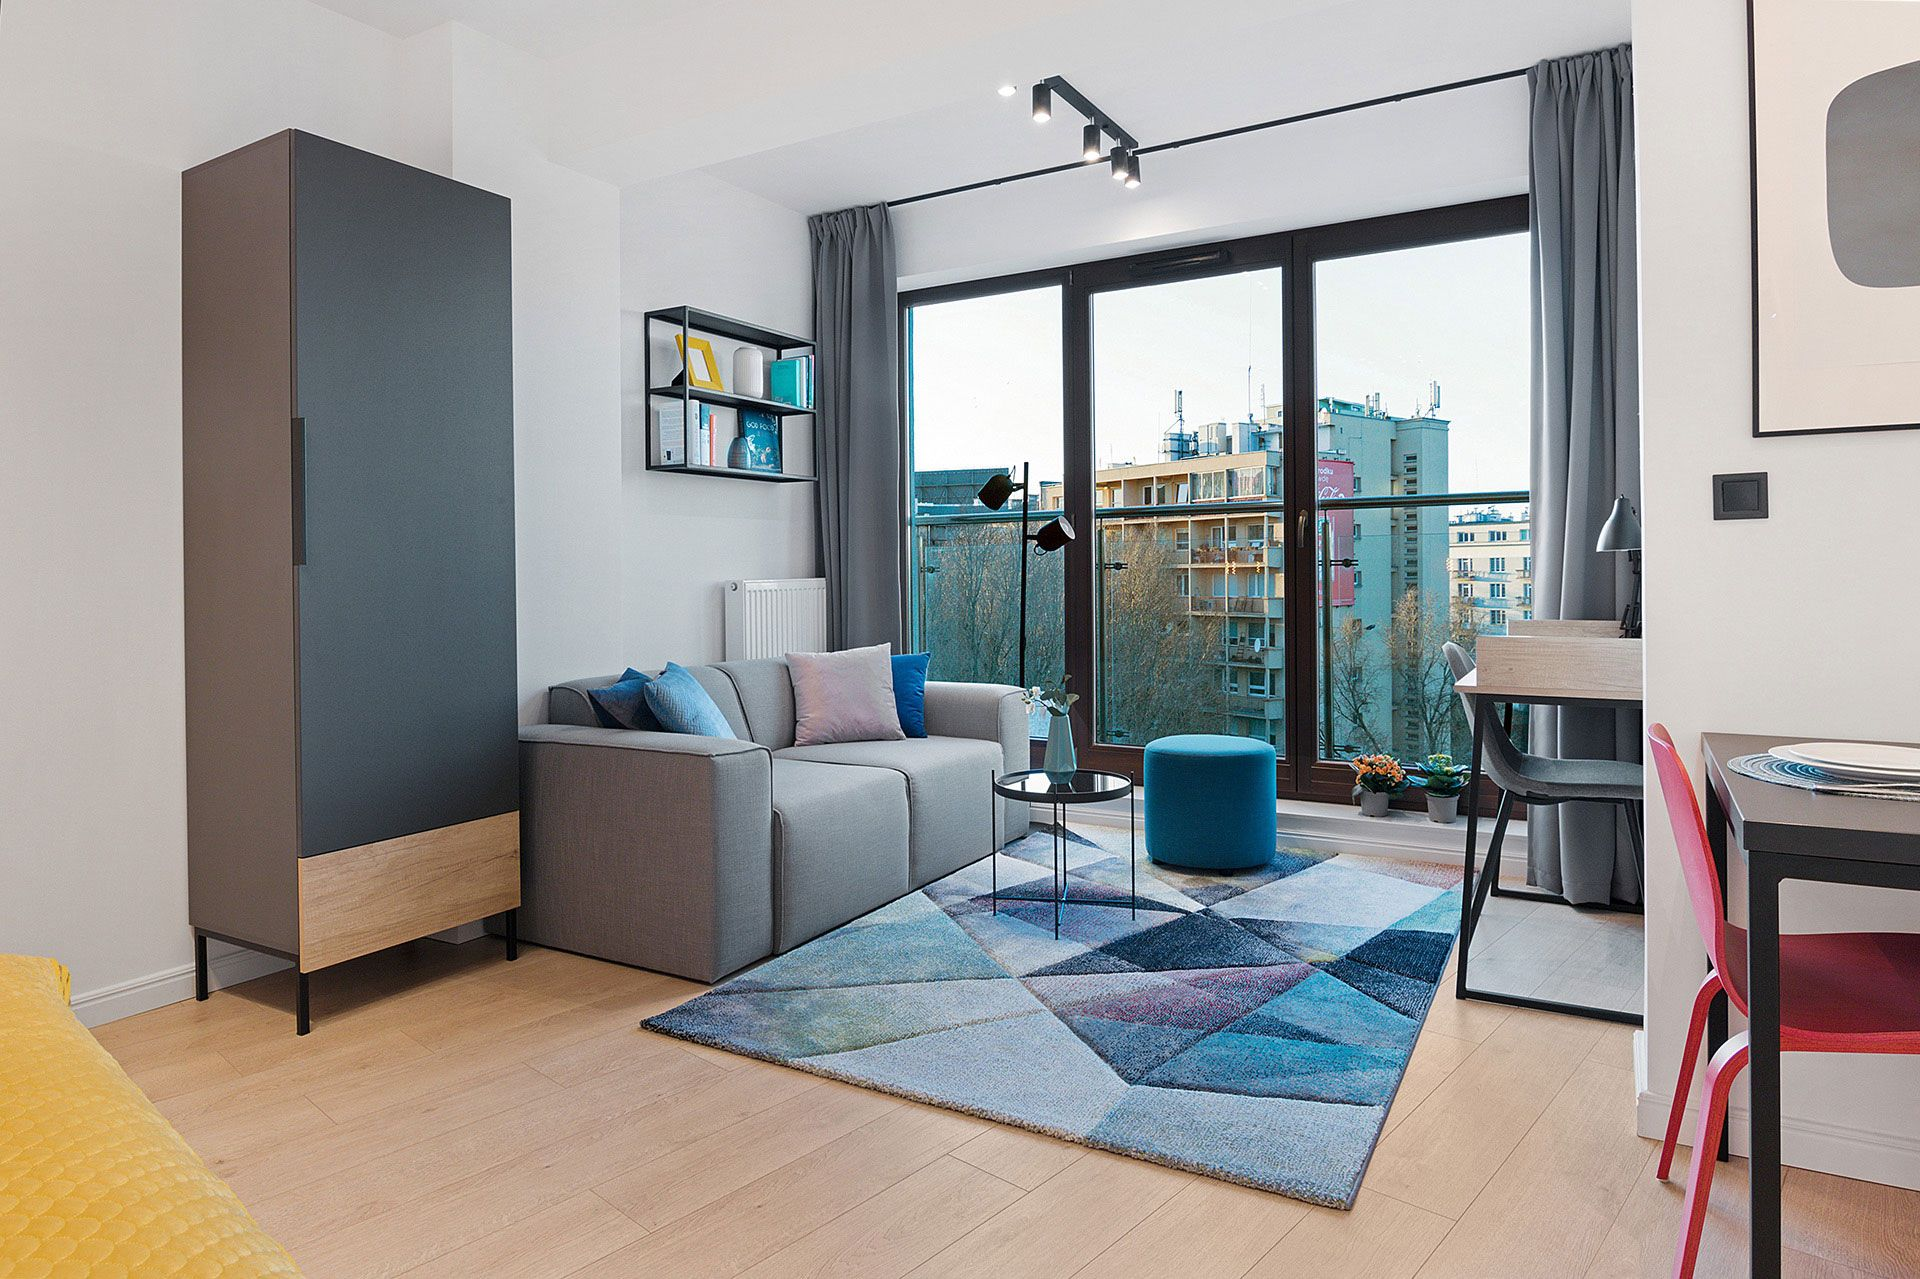 Studio - Medium apartment to rent in Warsaw UPR-A-022-1